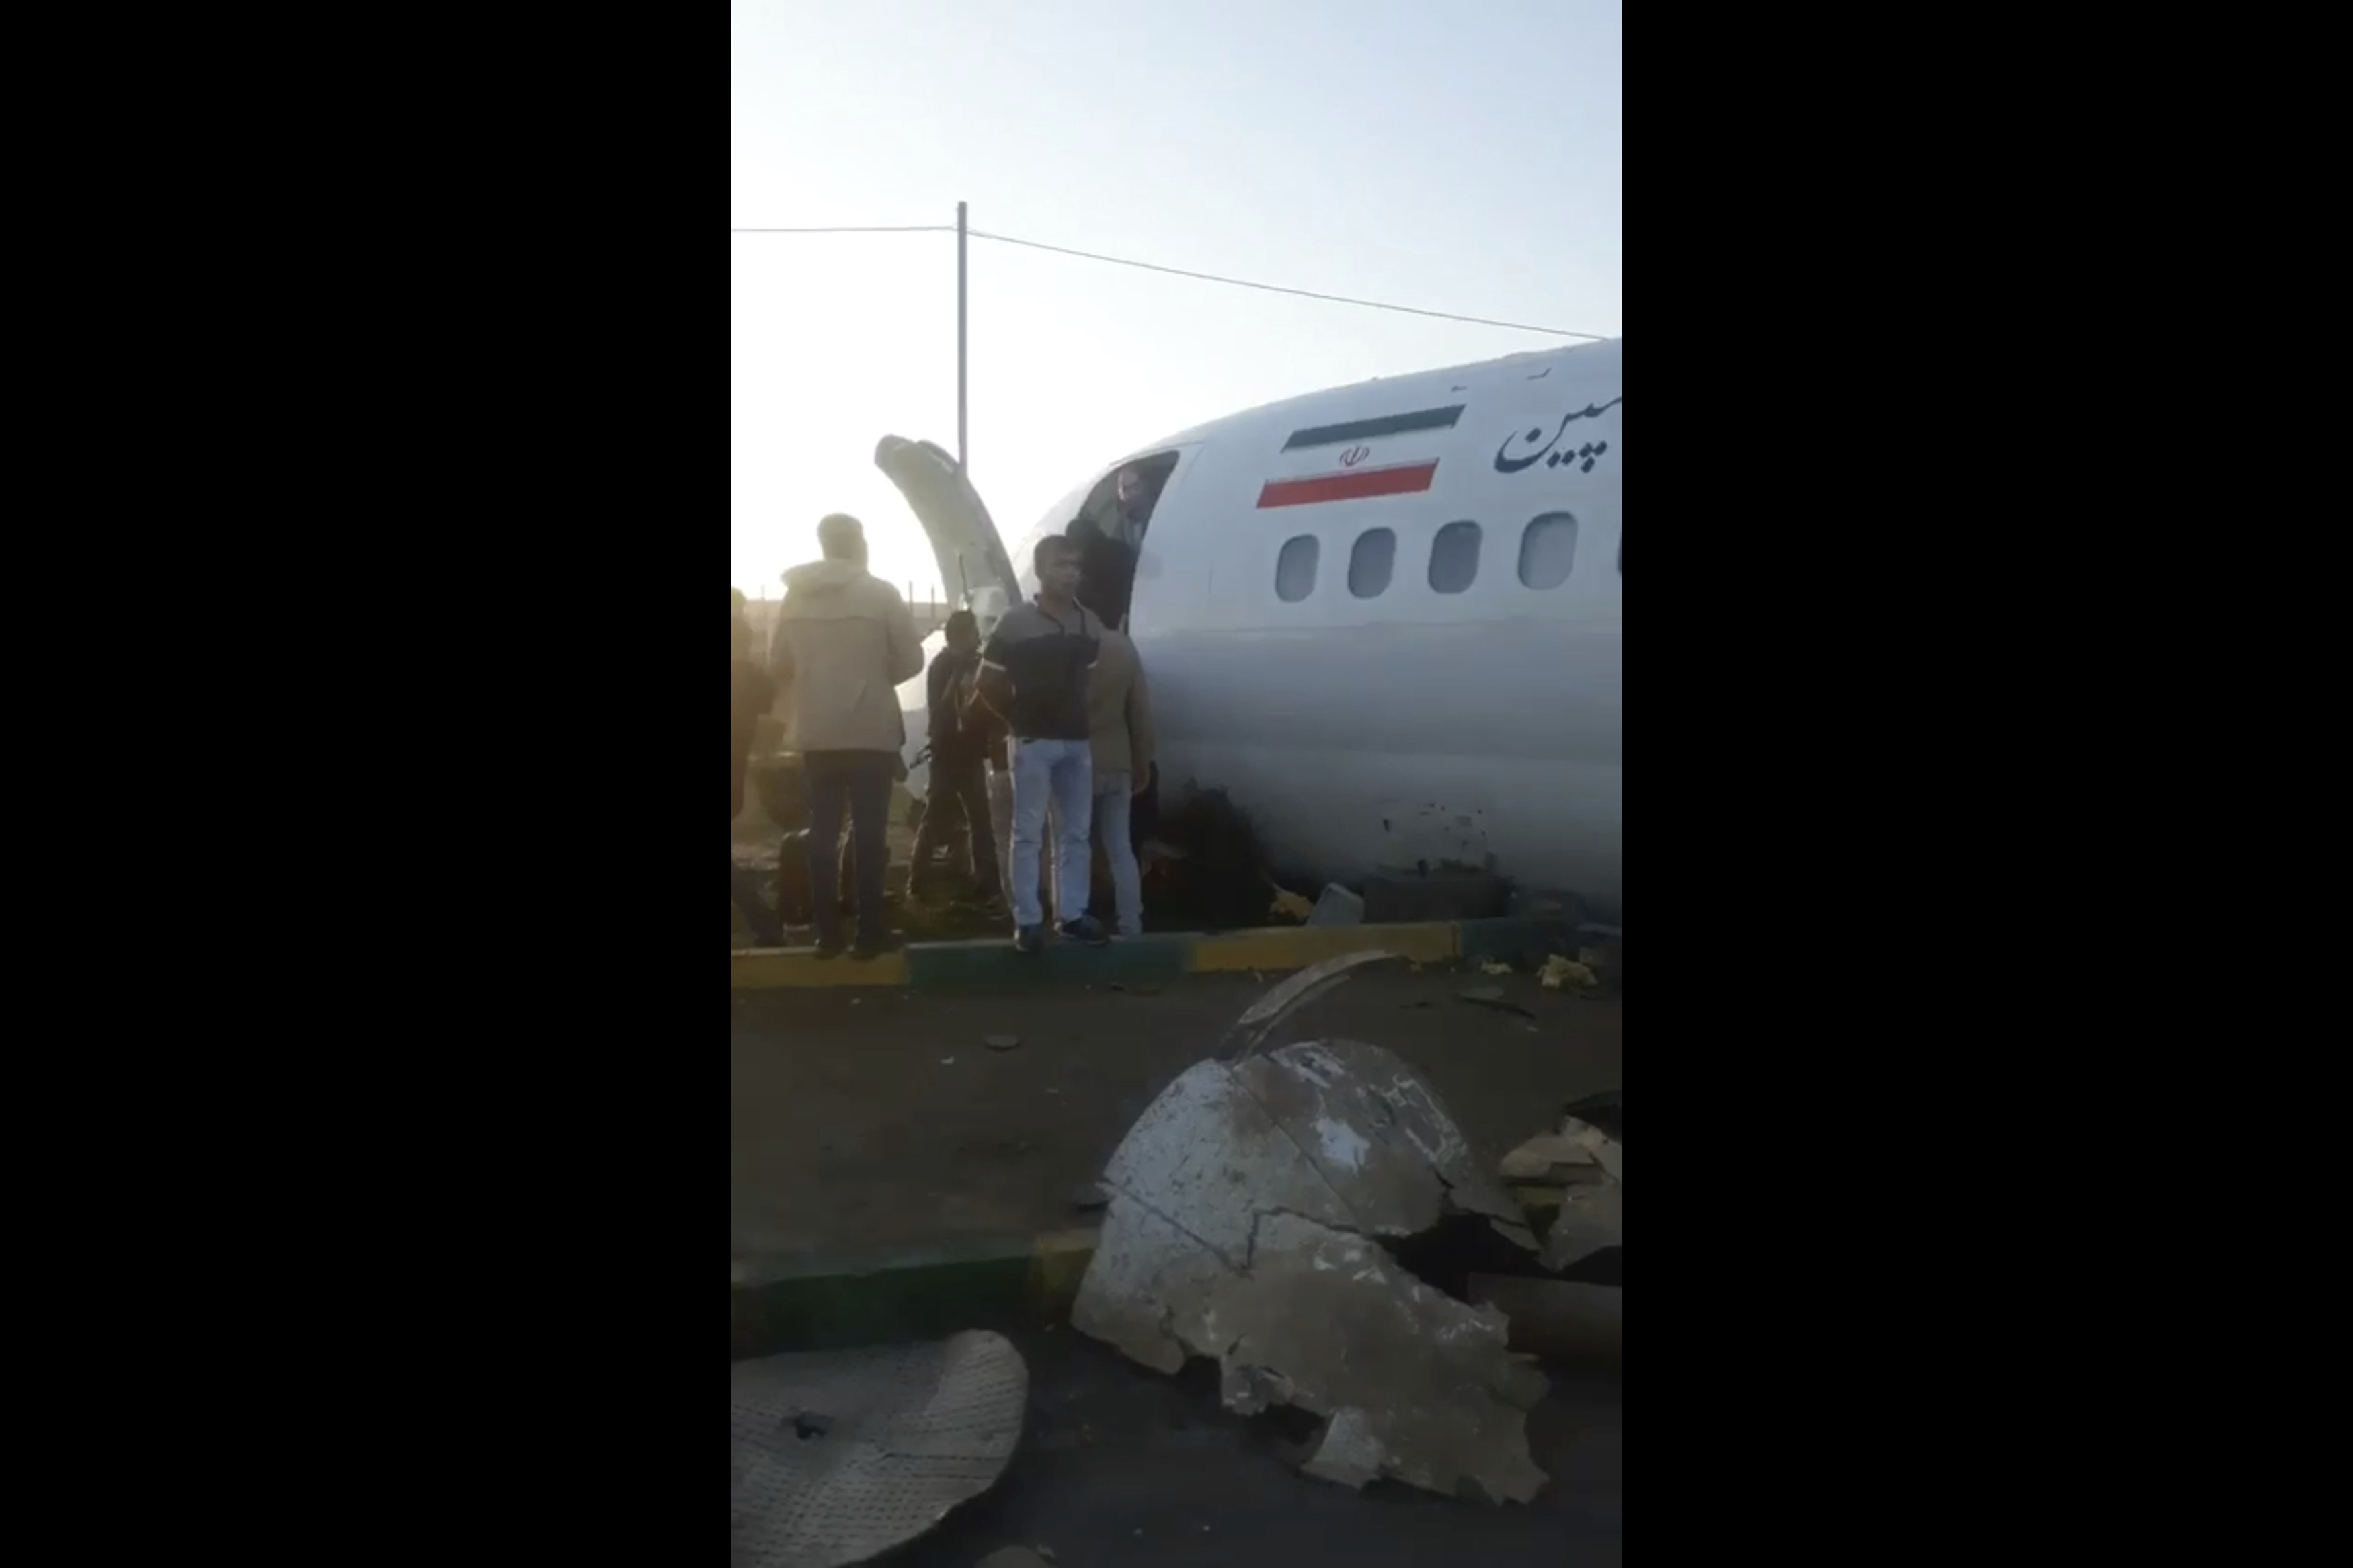 Passengers walk off a crashed plane in Mahshahr, Iran